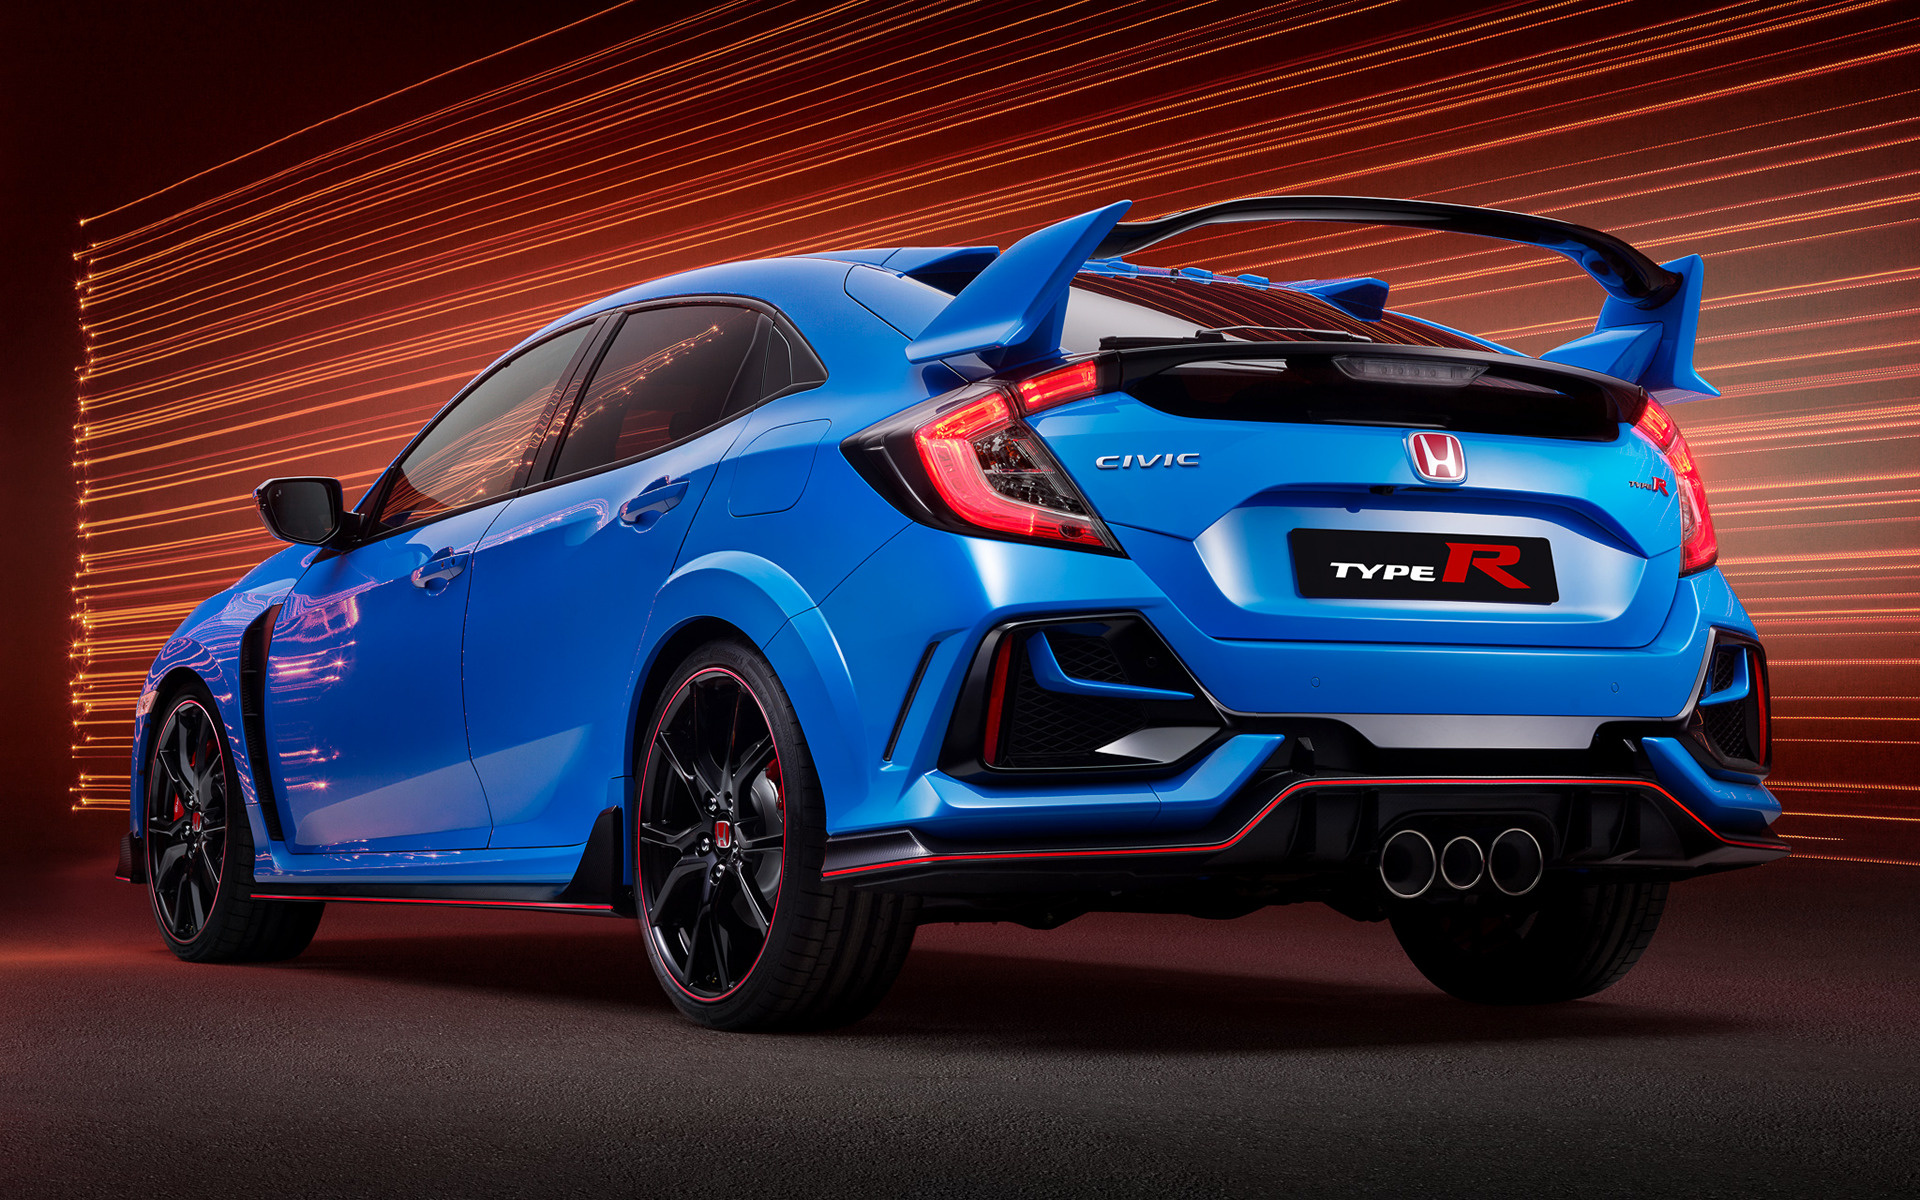 Acura Type R >> 2020 Honda Civic Type R - Wallpapers and HD Images | Car Pixel